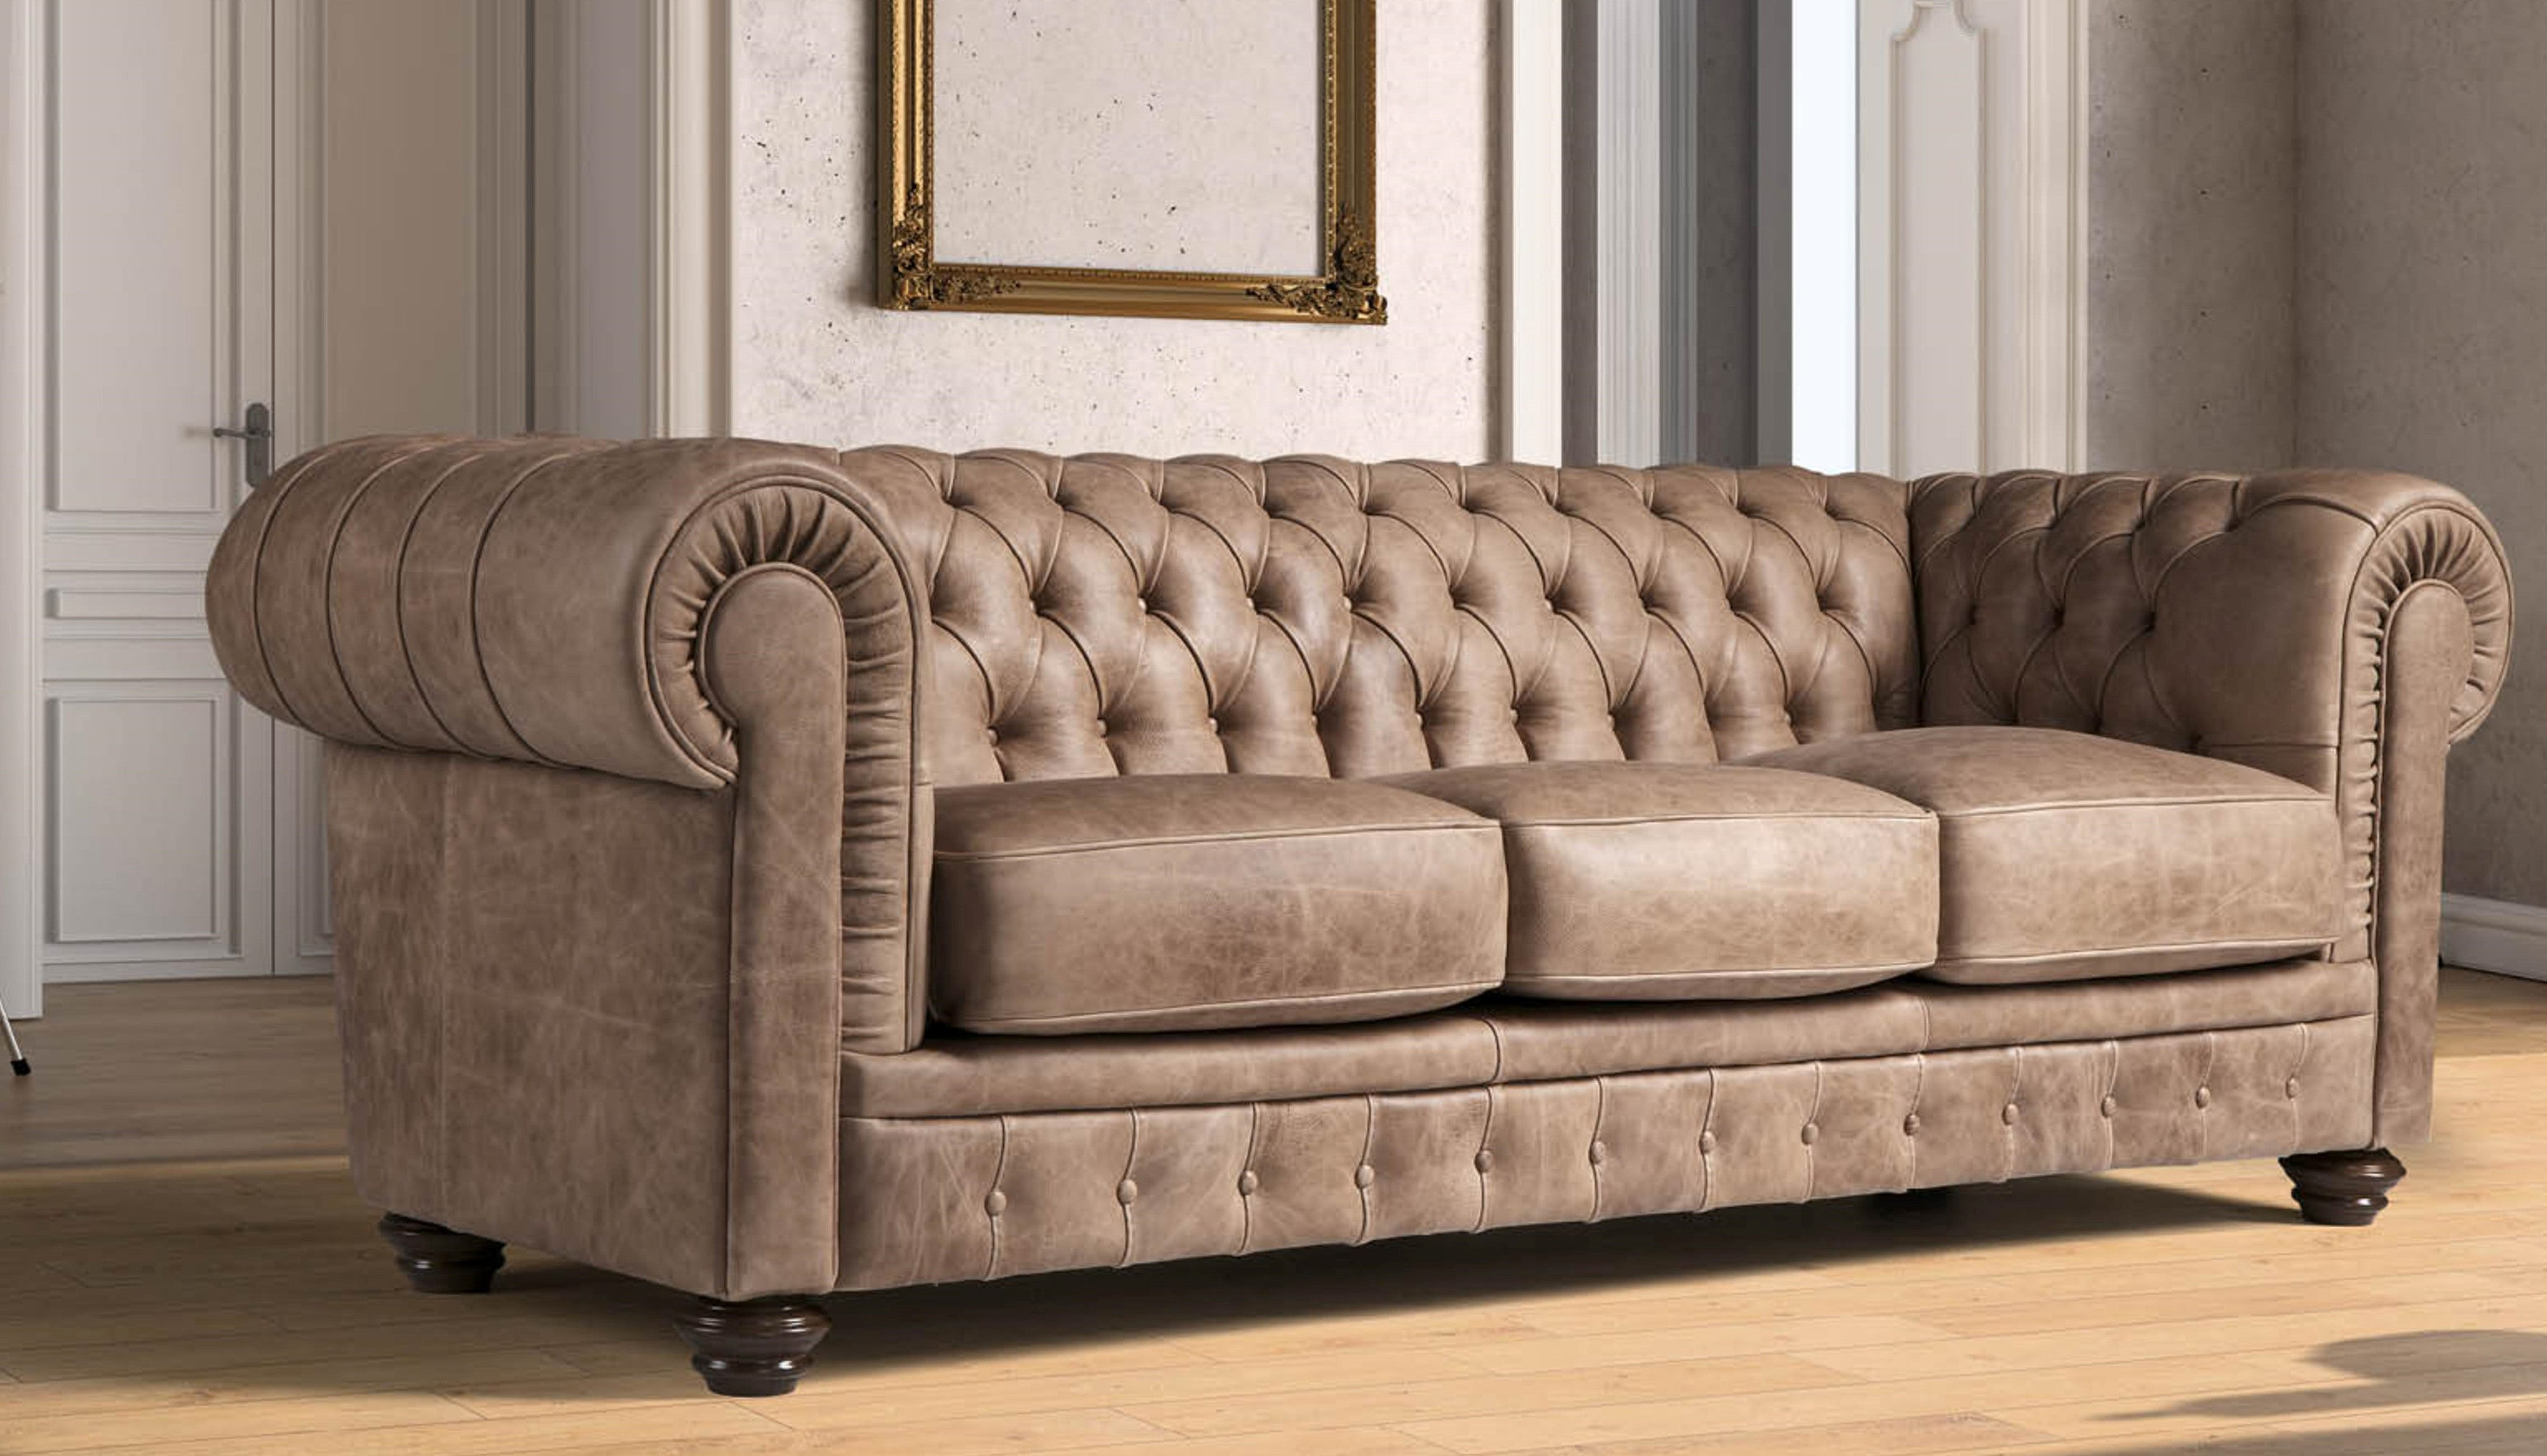 Luxury Leather Furniture in Castleford – KC Sofas